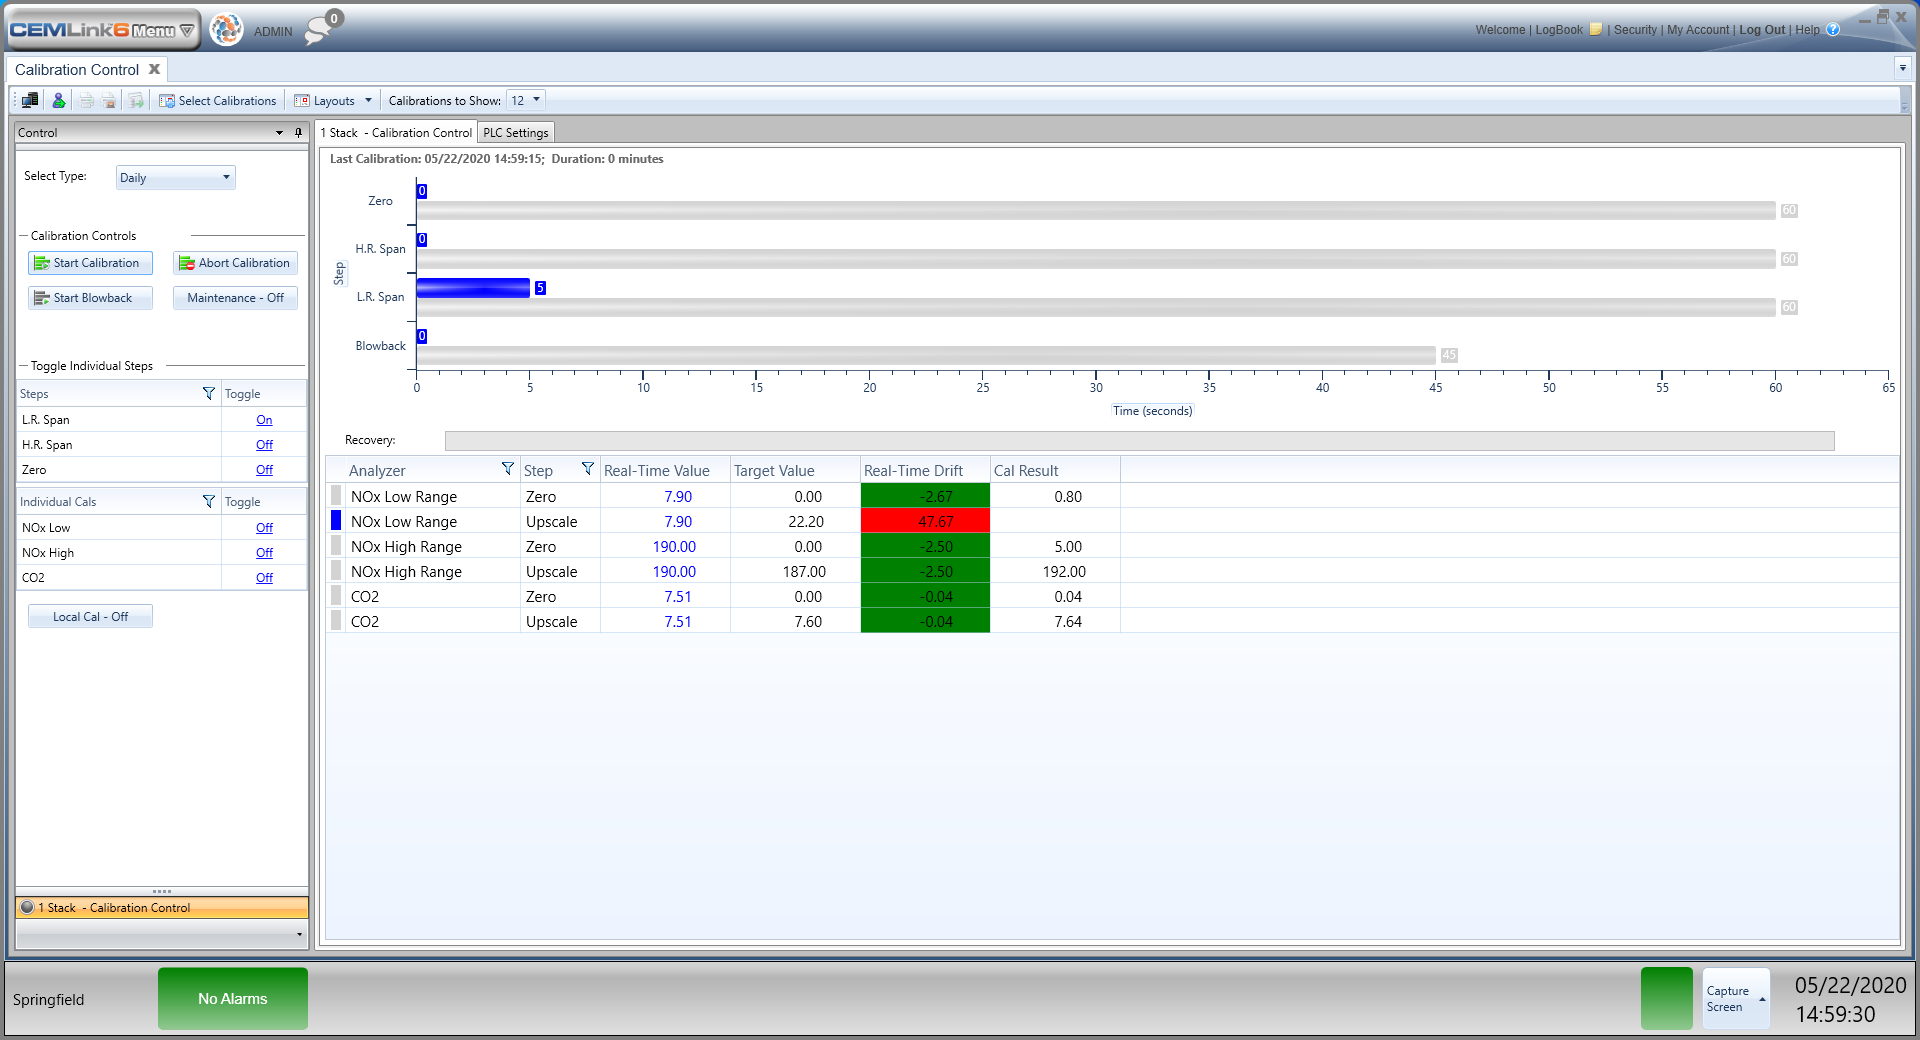 CEMLink 6 calibration control screenshot